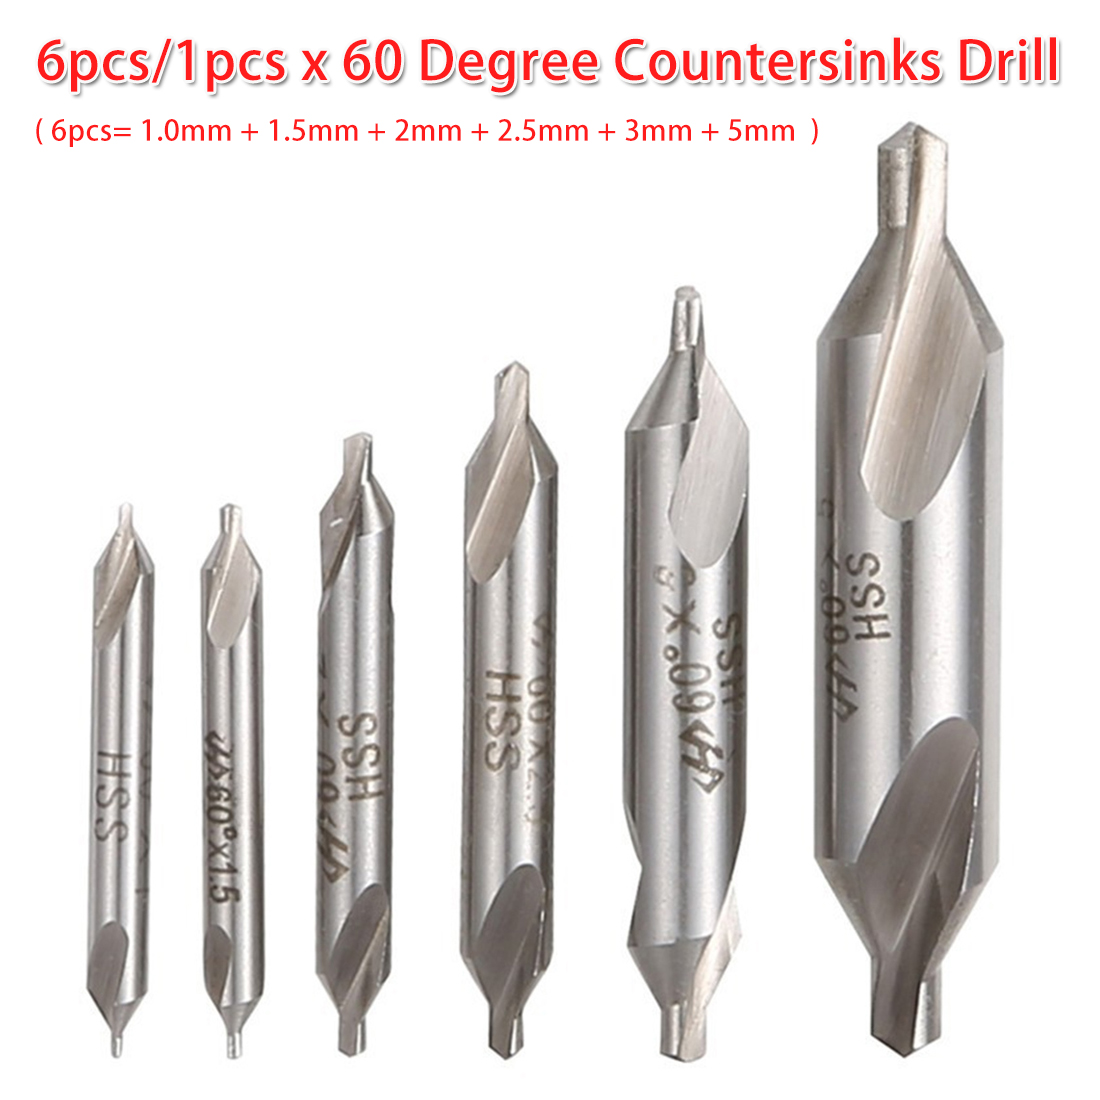 6pcs/1pcs HSS Combined Center Drill Bit 60 Degree Countersink Drill 1.0mm 1.5mm 2mm 2.5mm 3mm 5mm For Bodhi Rosary/ Woodwork